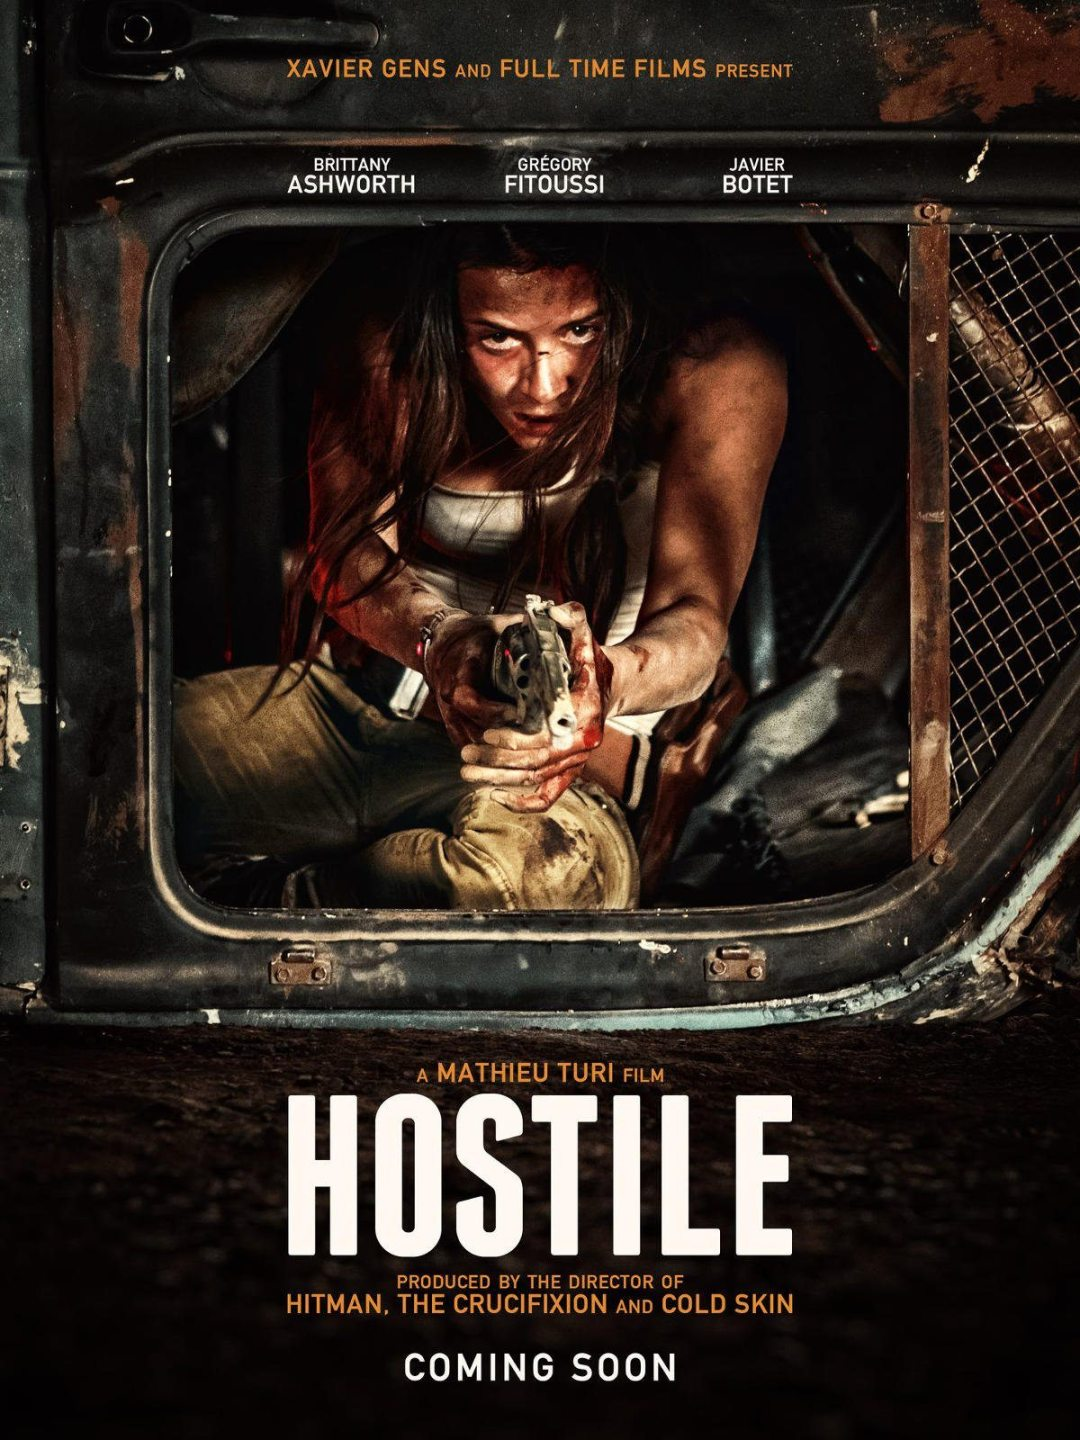 Things Are Getting 'Hostile' in This Trailer!